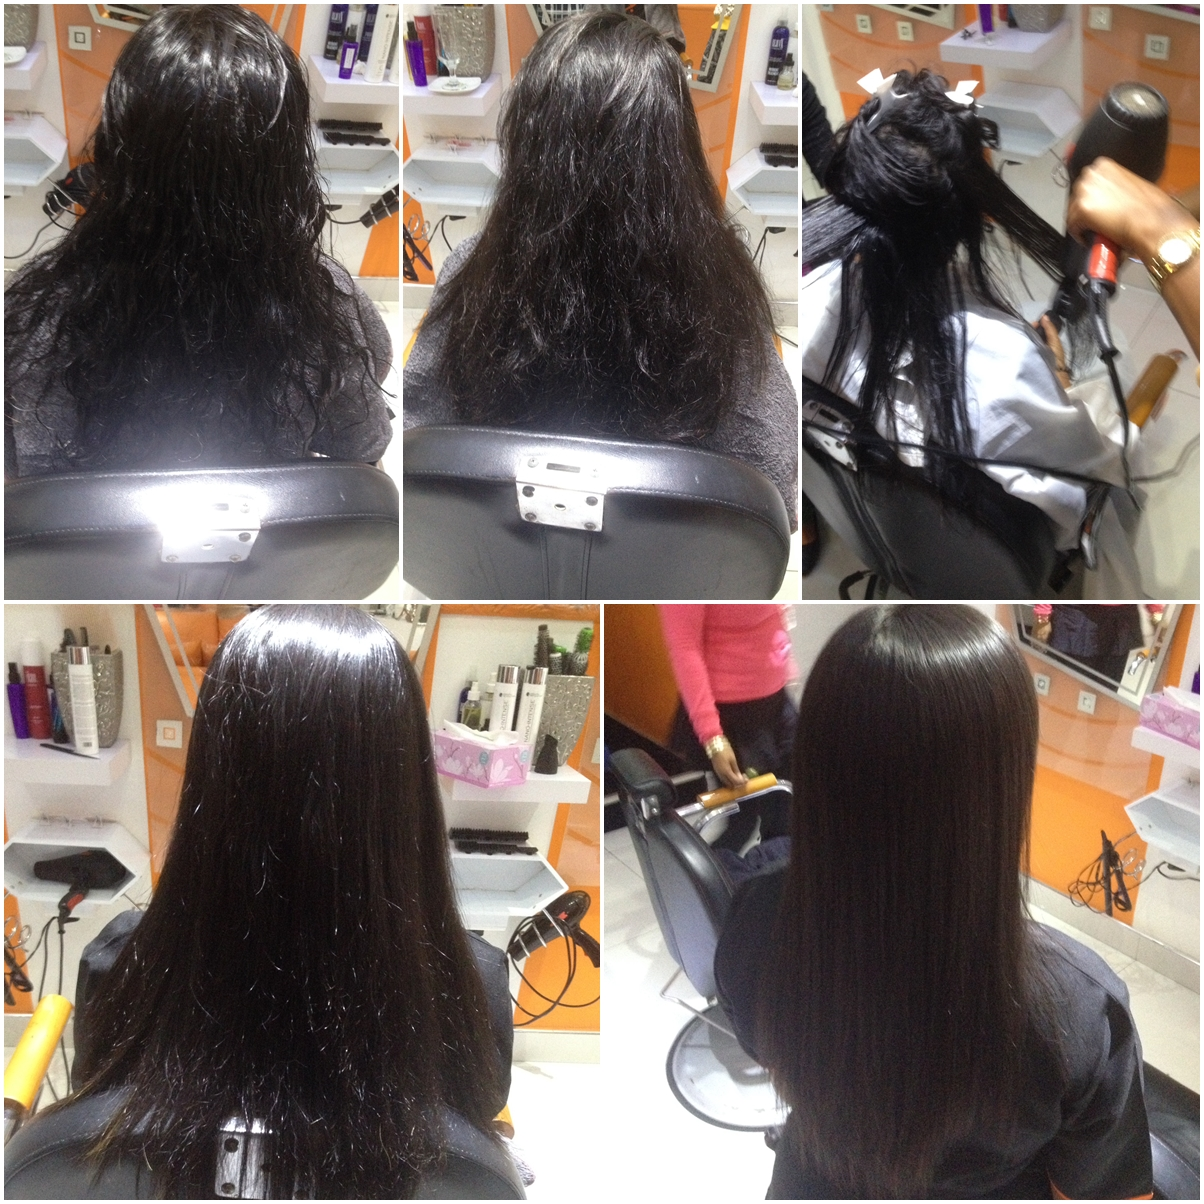 KERATIN ANTI FRISS HAIR STRAINTENING TREATMENT NOW AVAILABLE AT SALON CLEO SOUTH AFRICA 0315009998